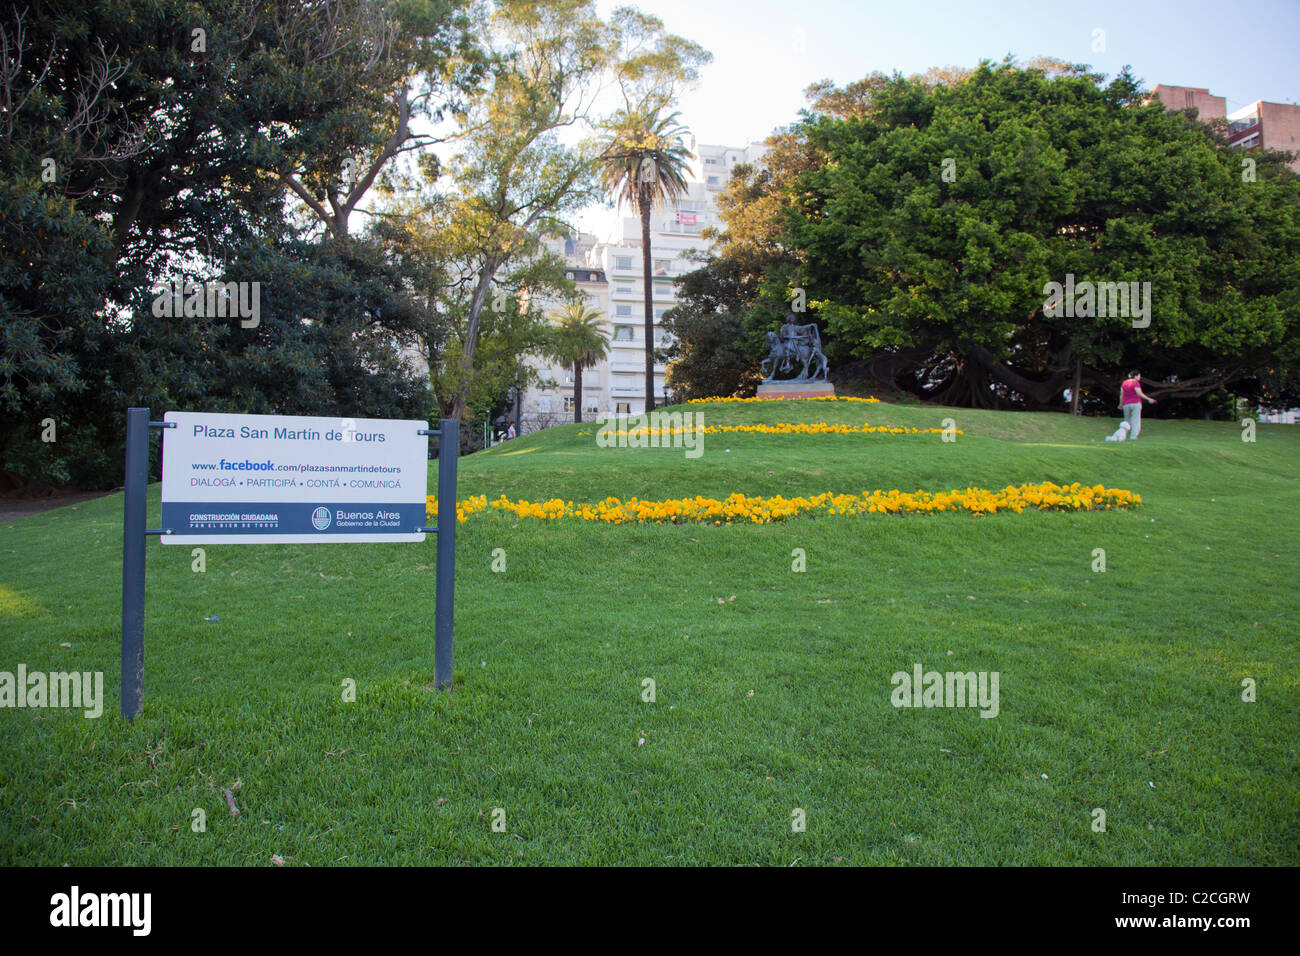 A small park in Recoleta, Plaza San Martin de Tours, Buenos Aires, with its own Facebook page - Stock Image